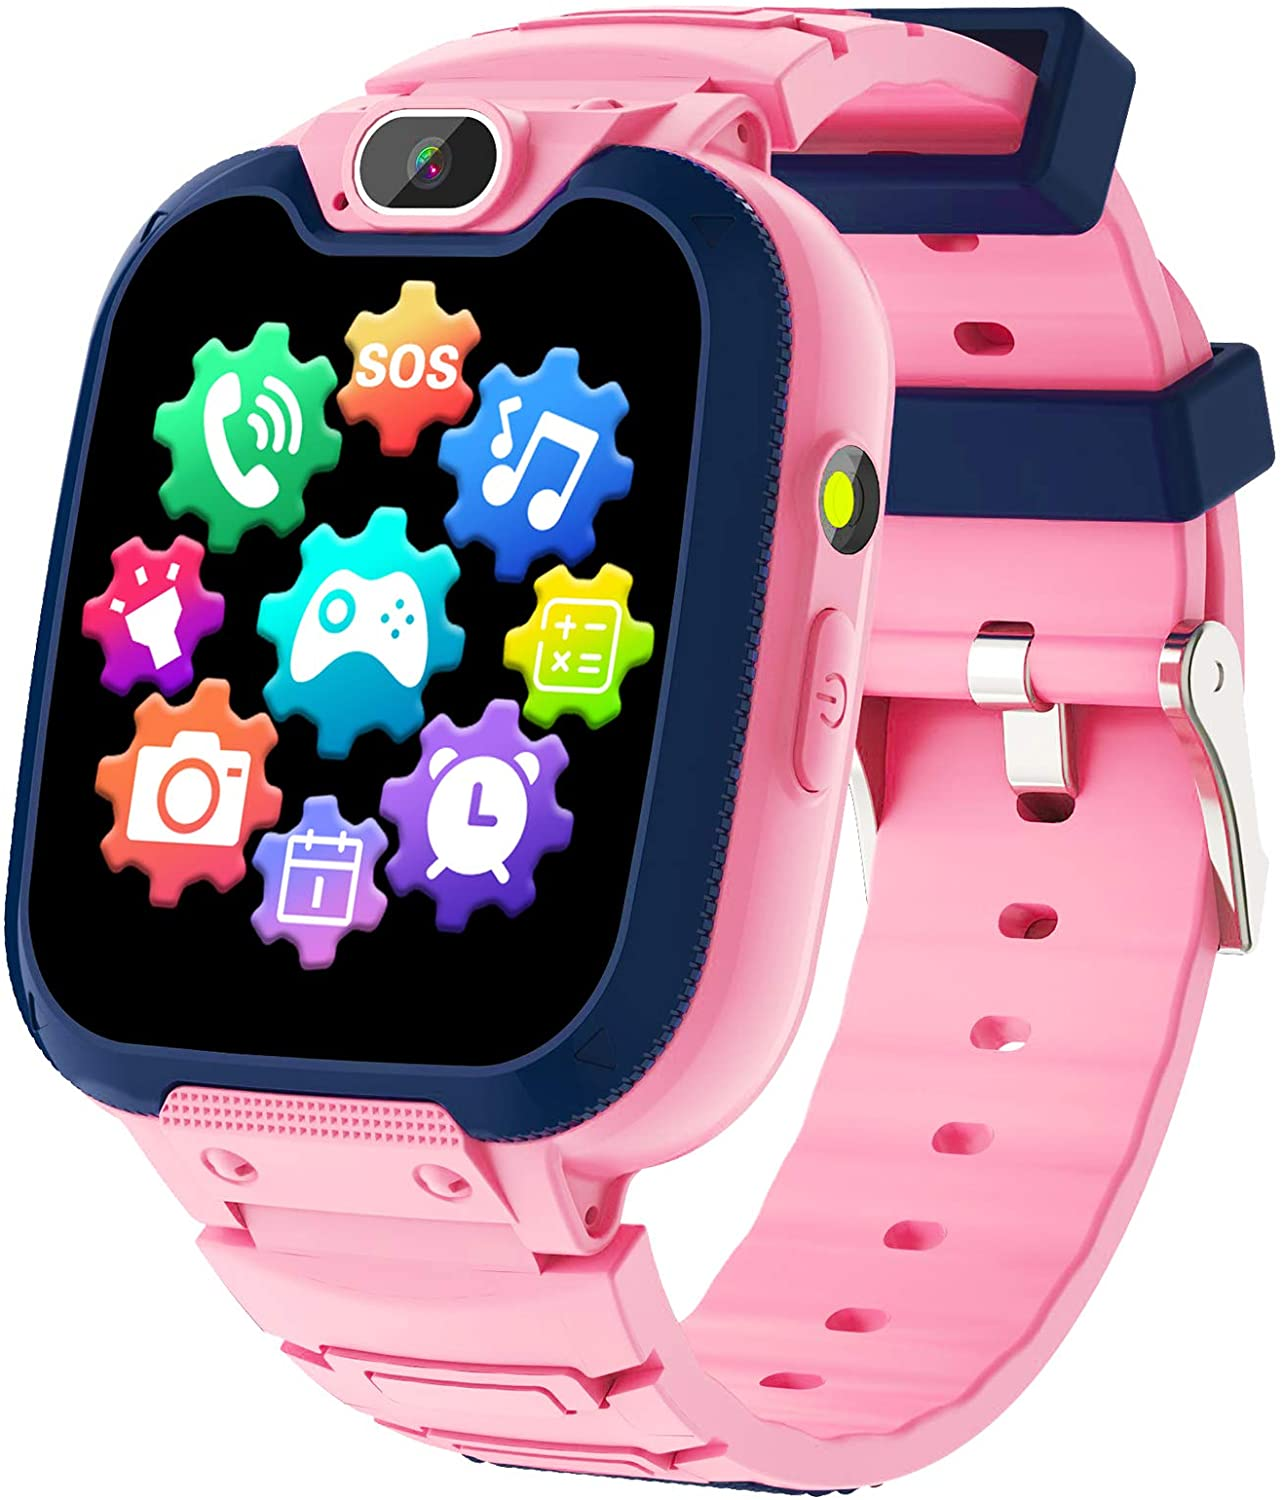 nadaho kids smartwatch pink color, isolated on white background